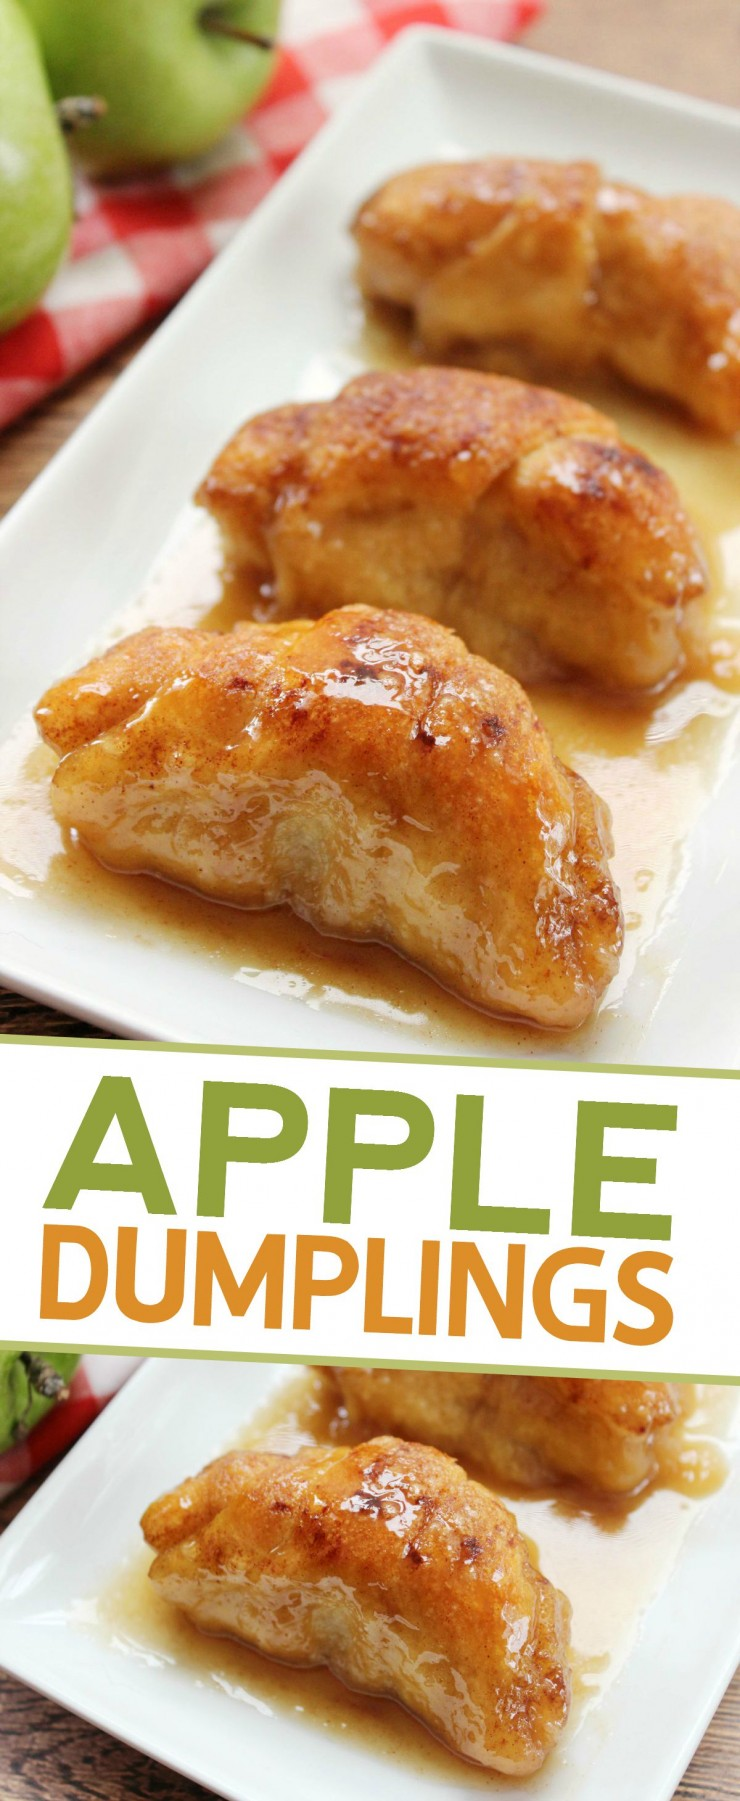 These Apple Dumplings are comforting, flaky and sweet - who knew Mountain Dew could be used to make such an amazing dessert?